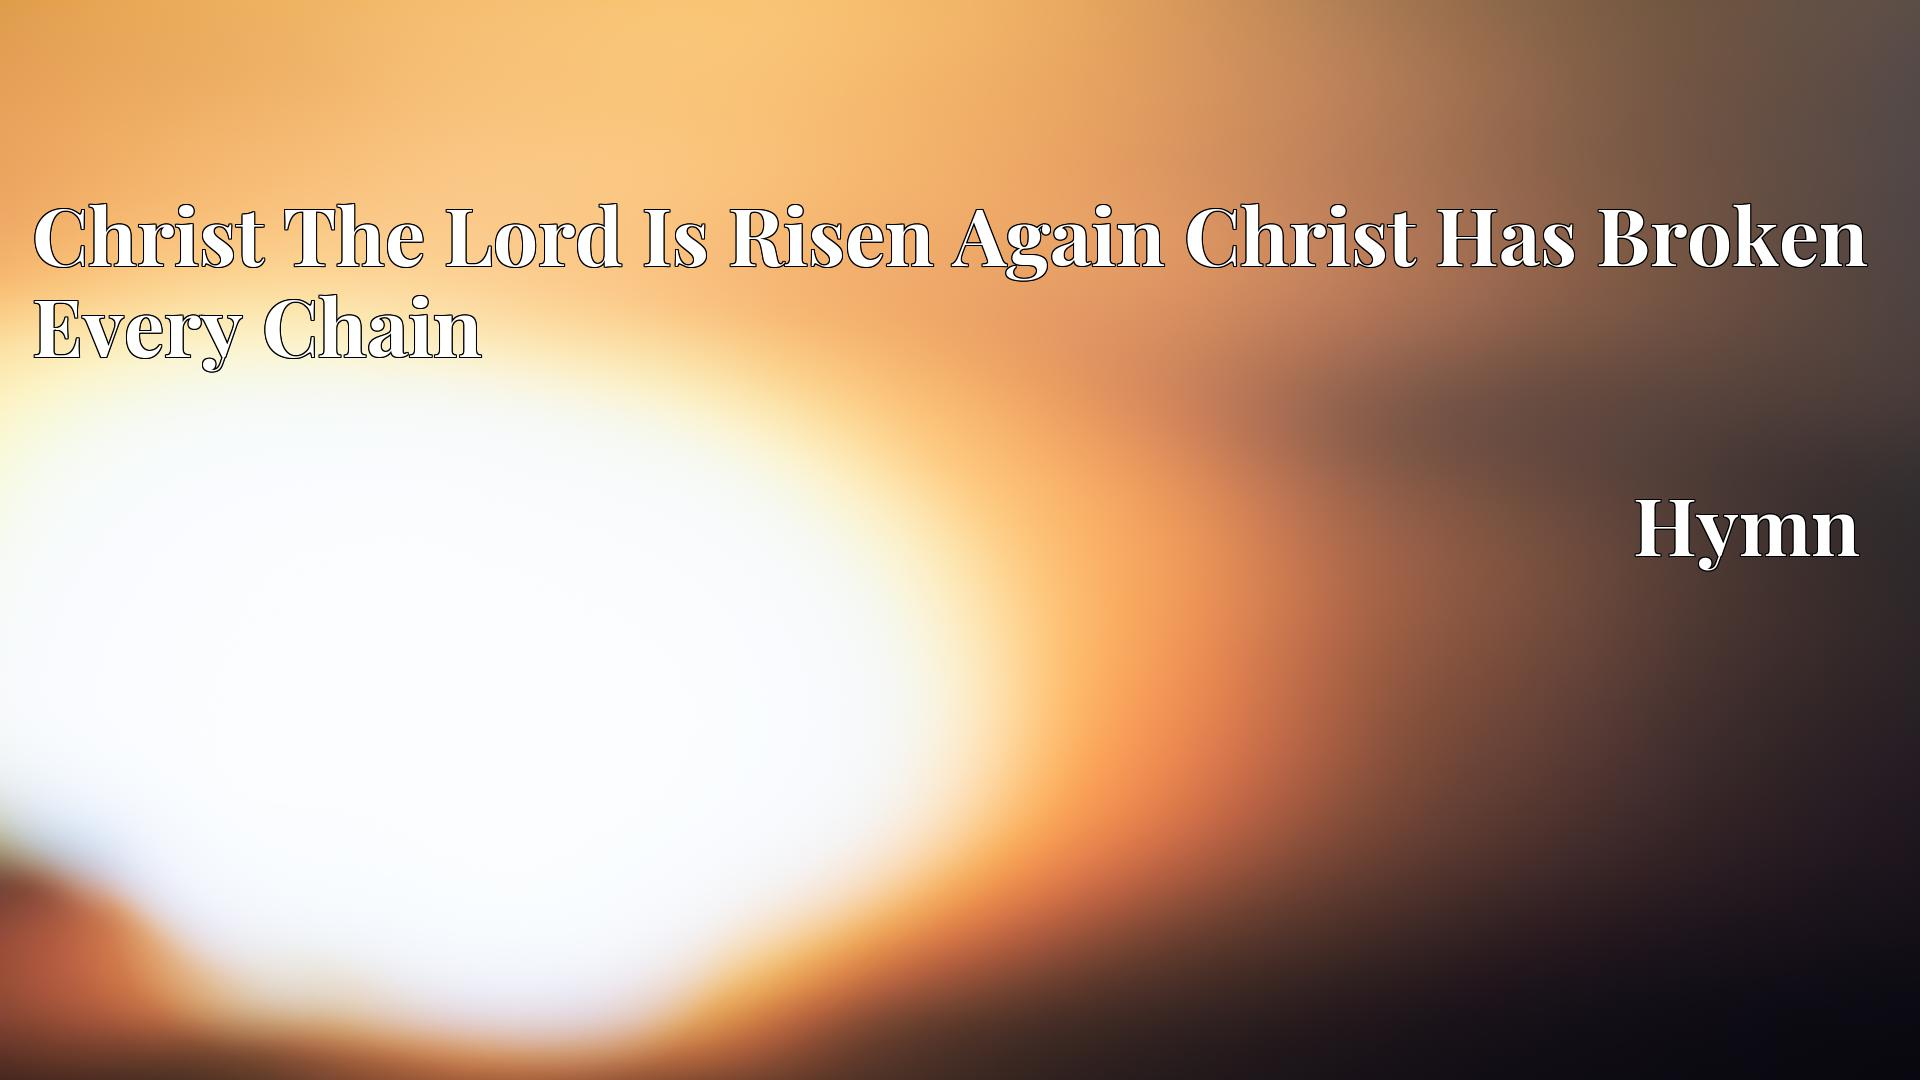 Christ The Lord Is Risen Again Christ Has Broken Every Chain - Hymn